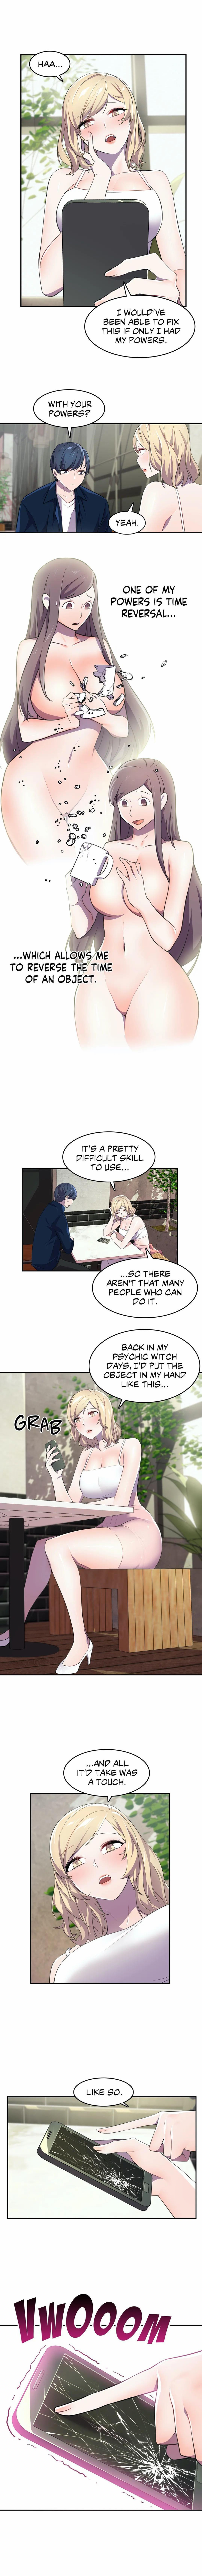 HERO MANAGER Ch. 1-15 44